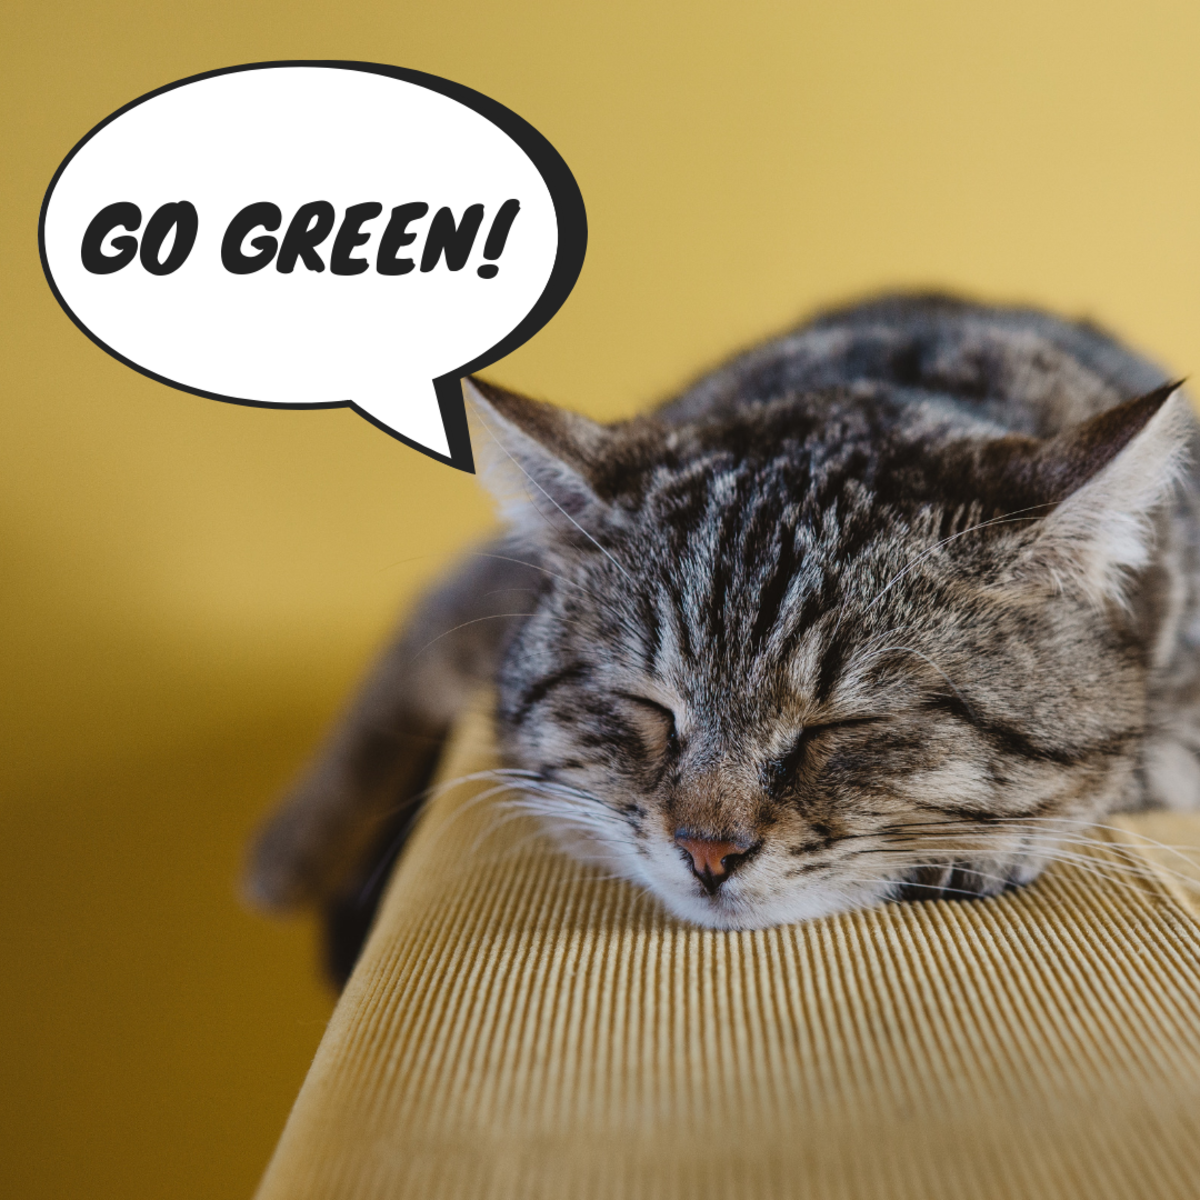 Go green with biodegradable cat litter!